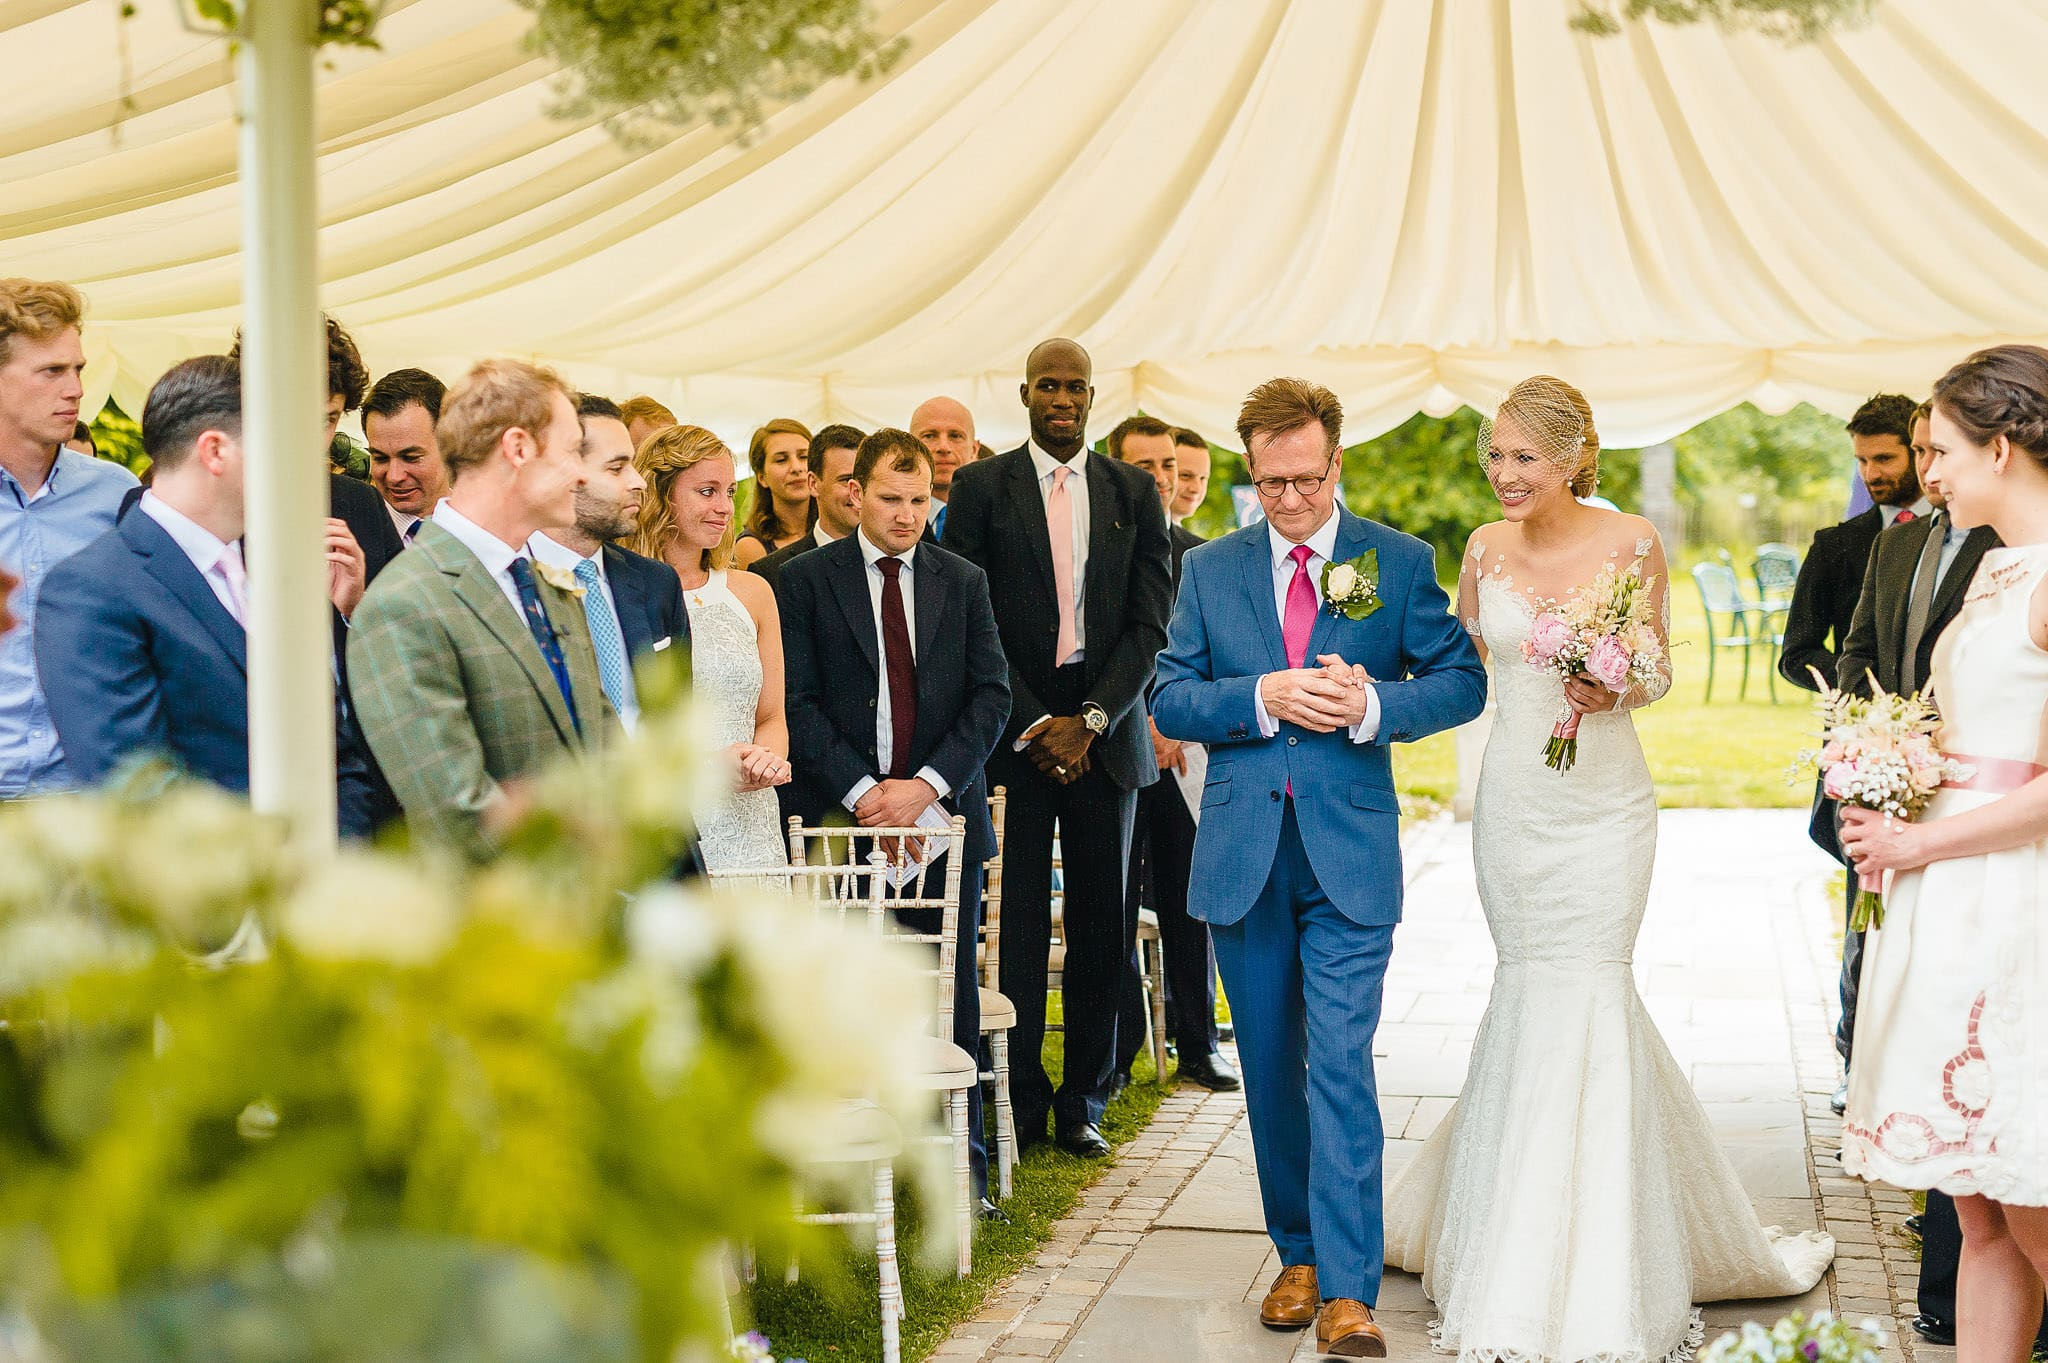 Lemore Manor Wedding Photographer | Hannah and Angus 21